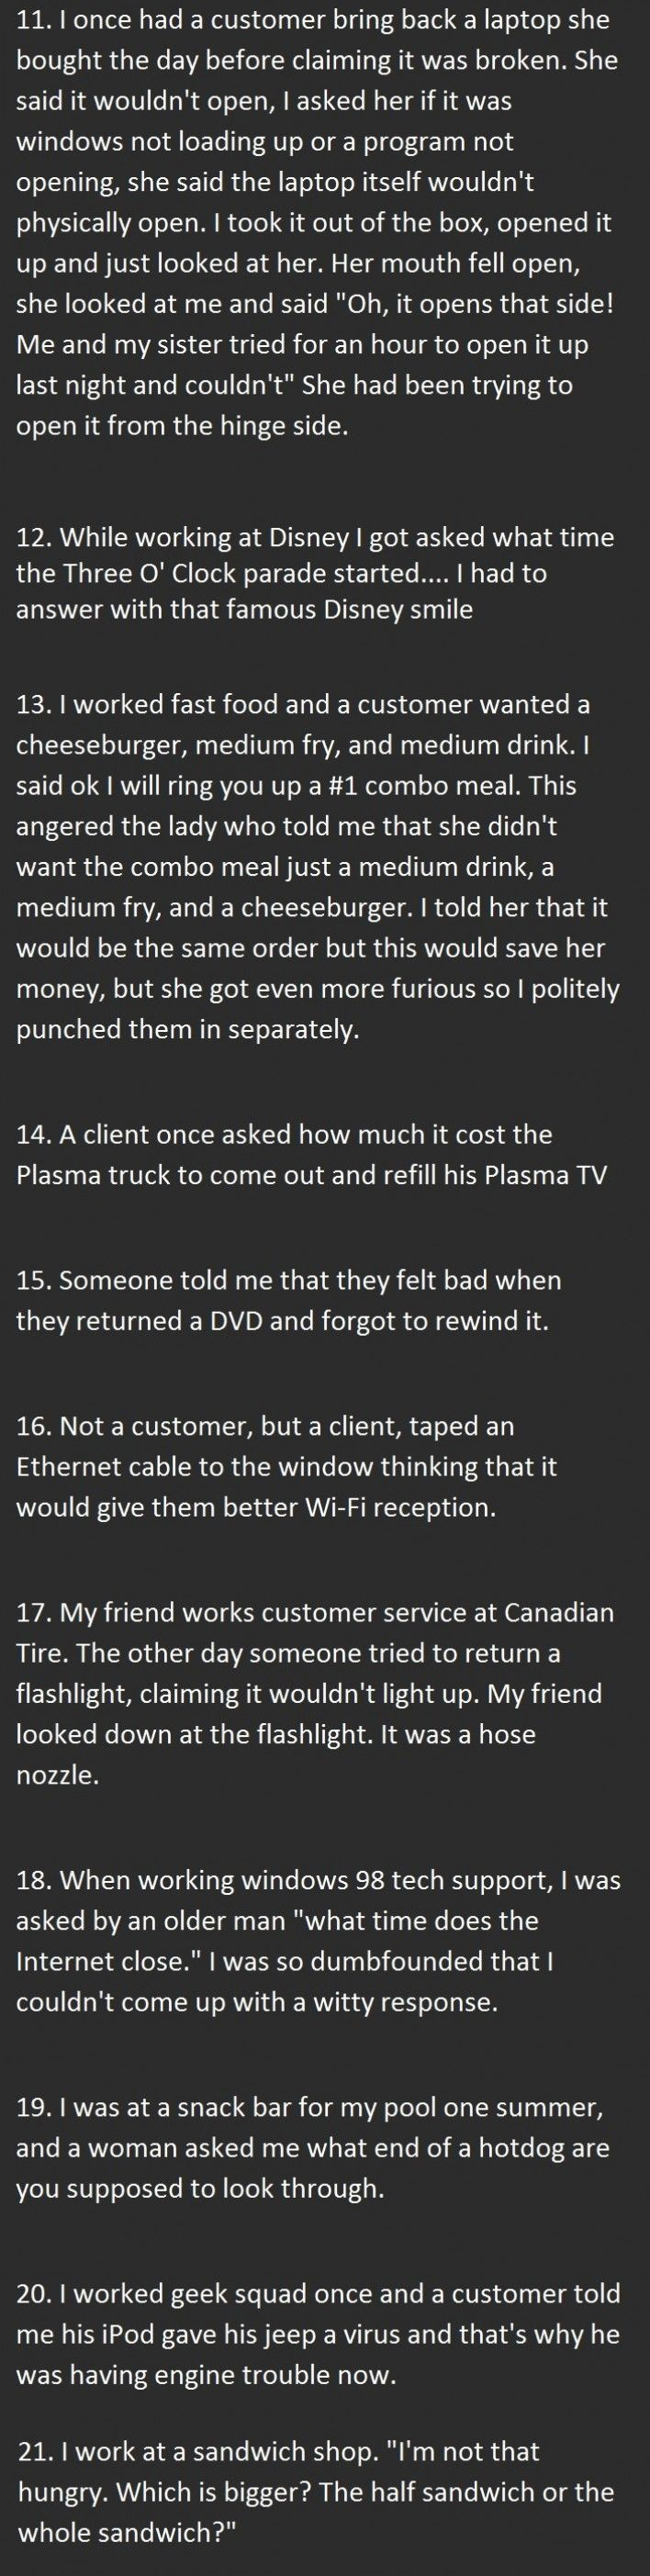 Tickld Mobile - 21 Dumbest Customers Ever. Number 12 Is So Stupid It Hurts.